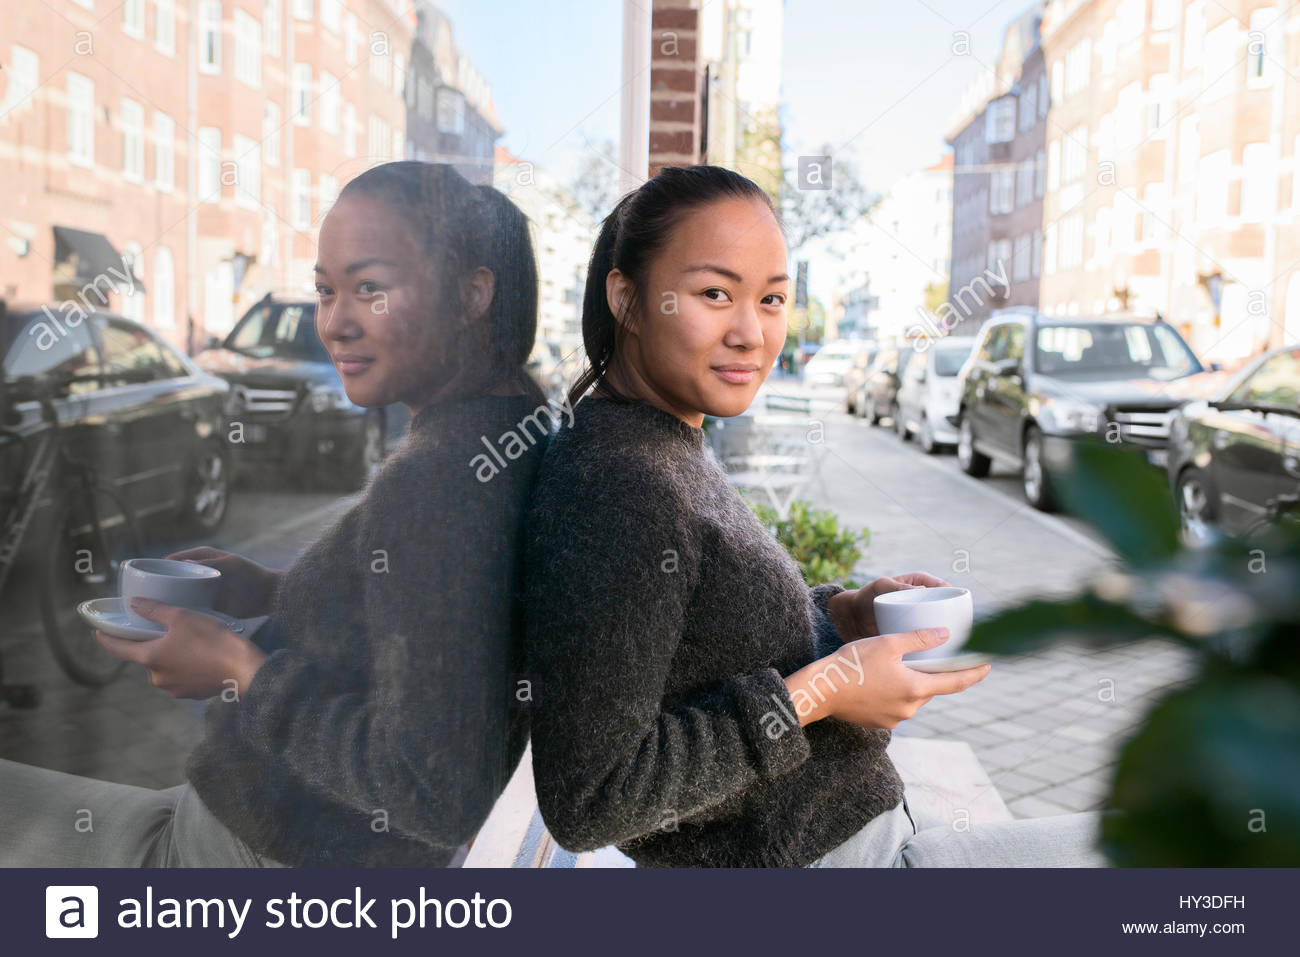 Sweden, Skane, Malmo, Woman sitting and holding cafe cup - Stock Image